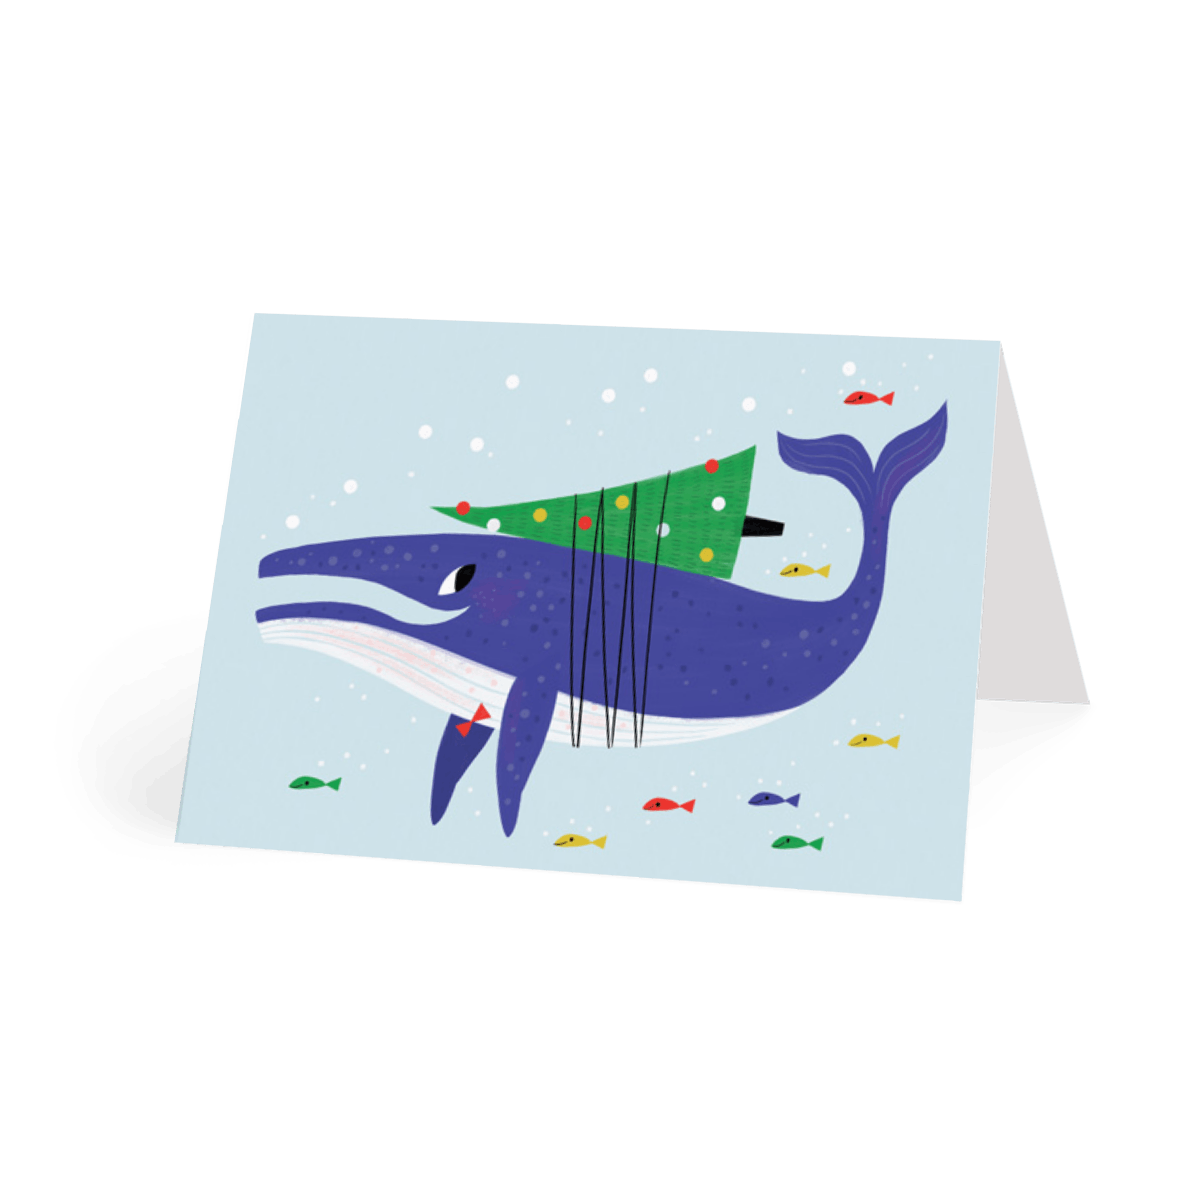 Https%3a%2f%2fwww.papier.com%2fproduct image%2f12447%2f14%2fchristmas whale 3135 avant 1476955395.png?ixlib=rb 1.1